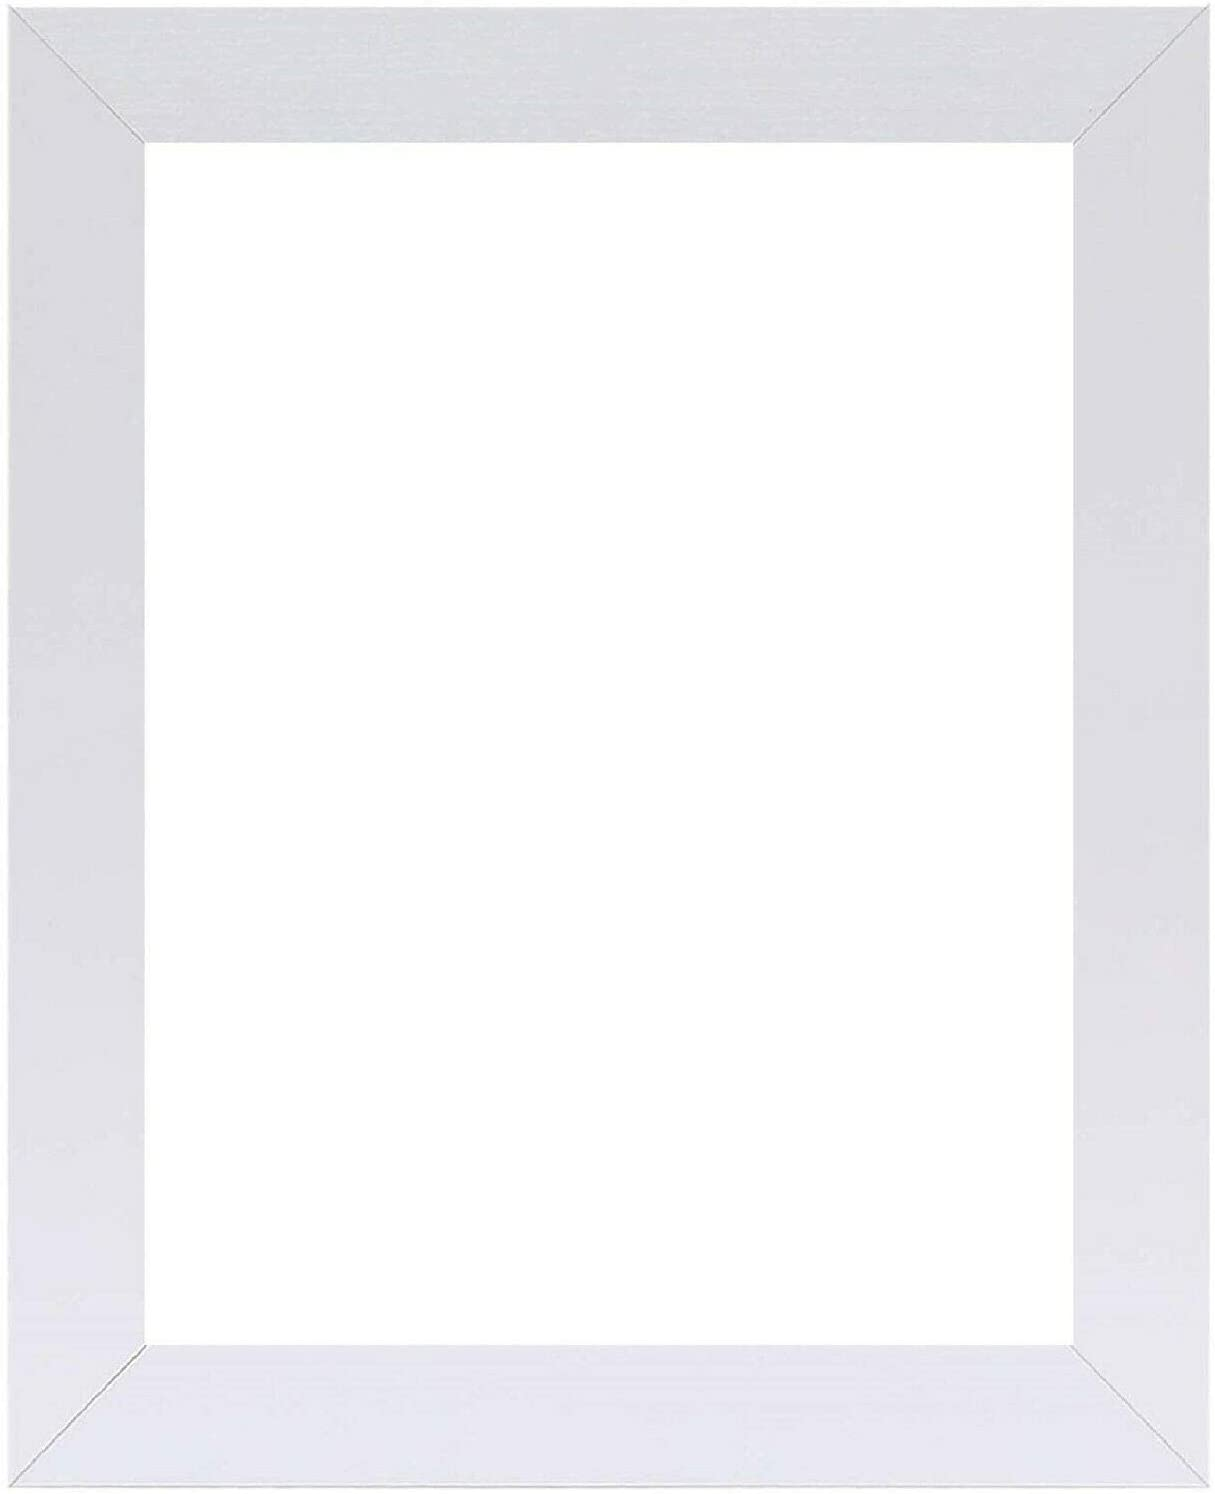 US Art Frame 4x6 Dealing full price reduction Chalk White Inch price Flat Composite Wood MDF 1.25